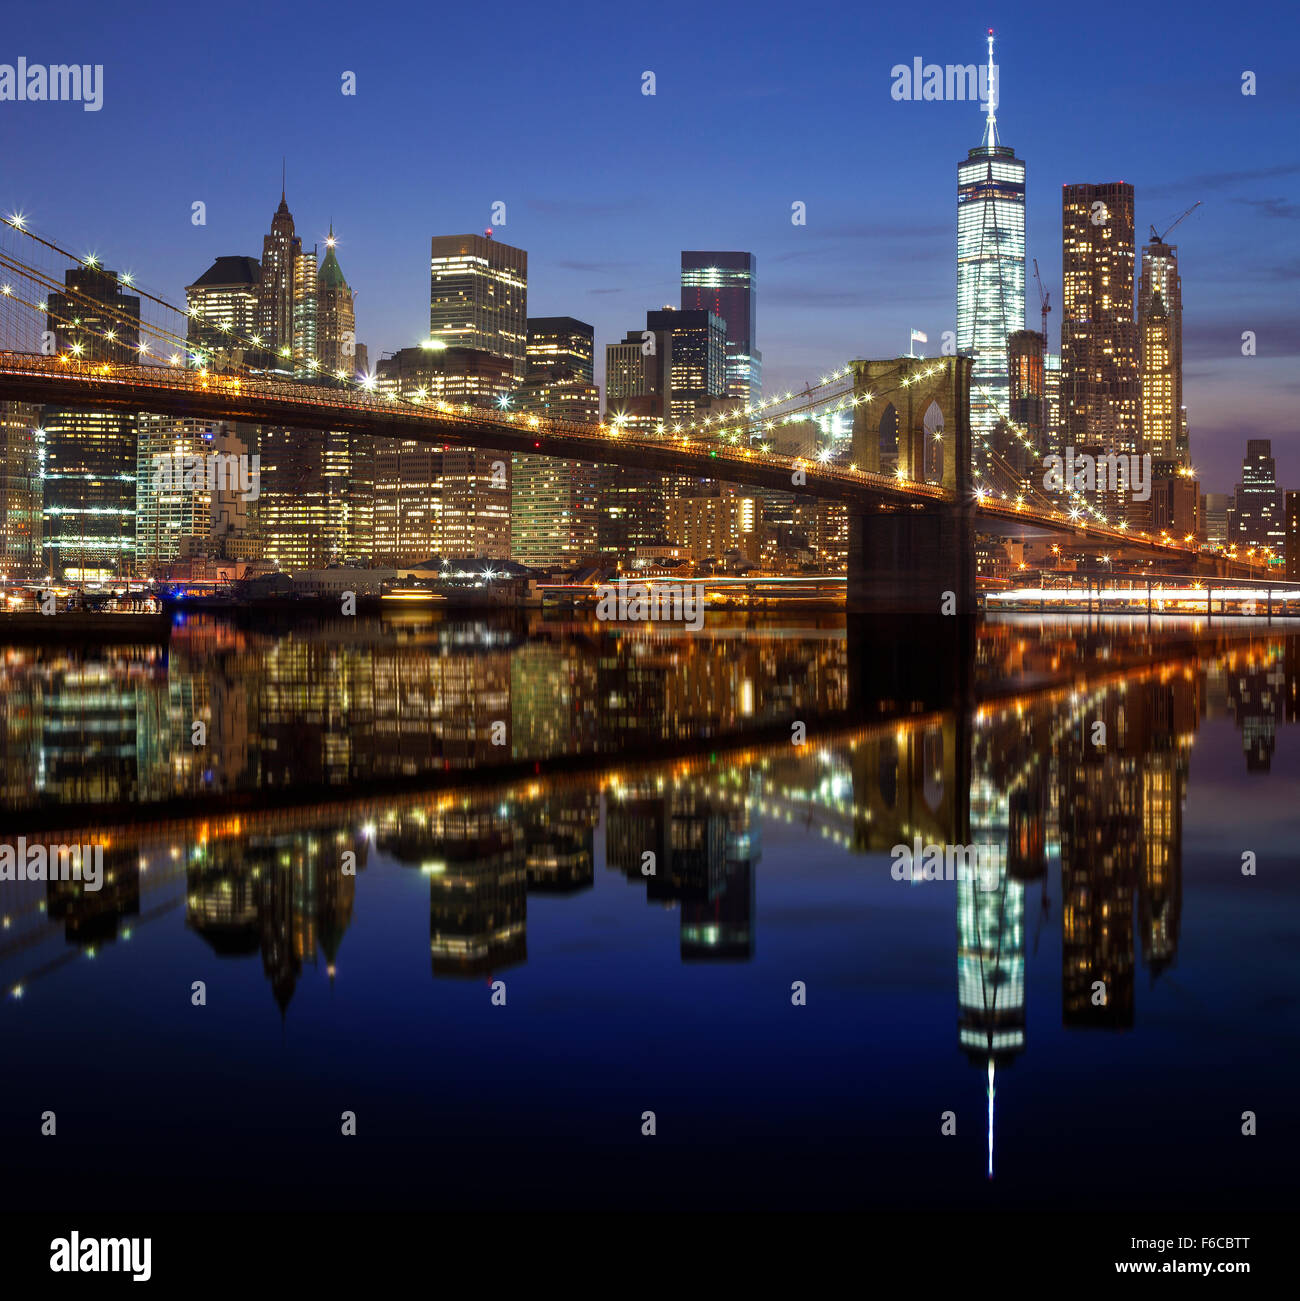 Manhattan waterfront reflected in water at night, New York City, USA. Stock Photo